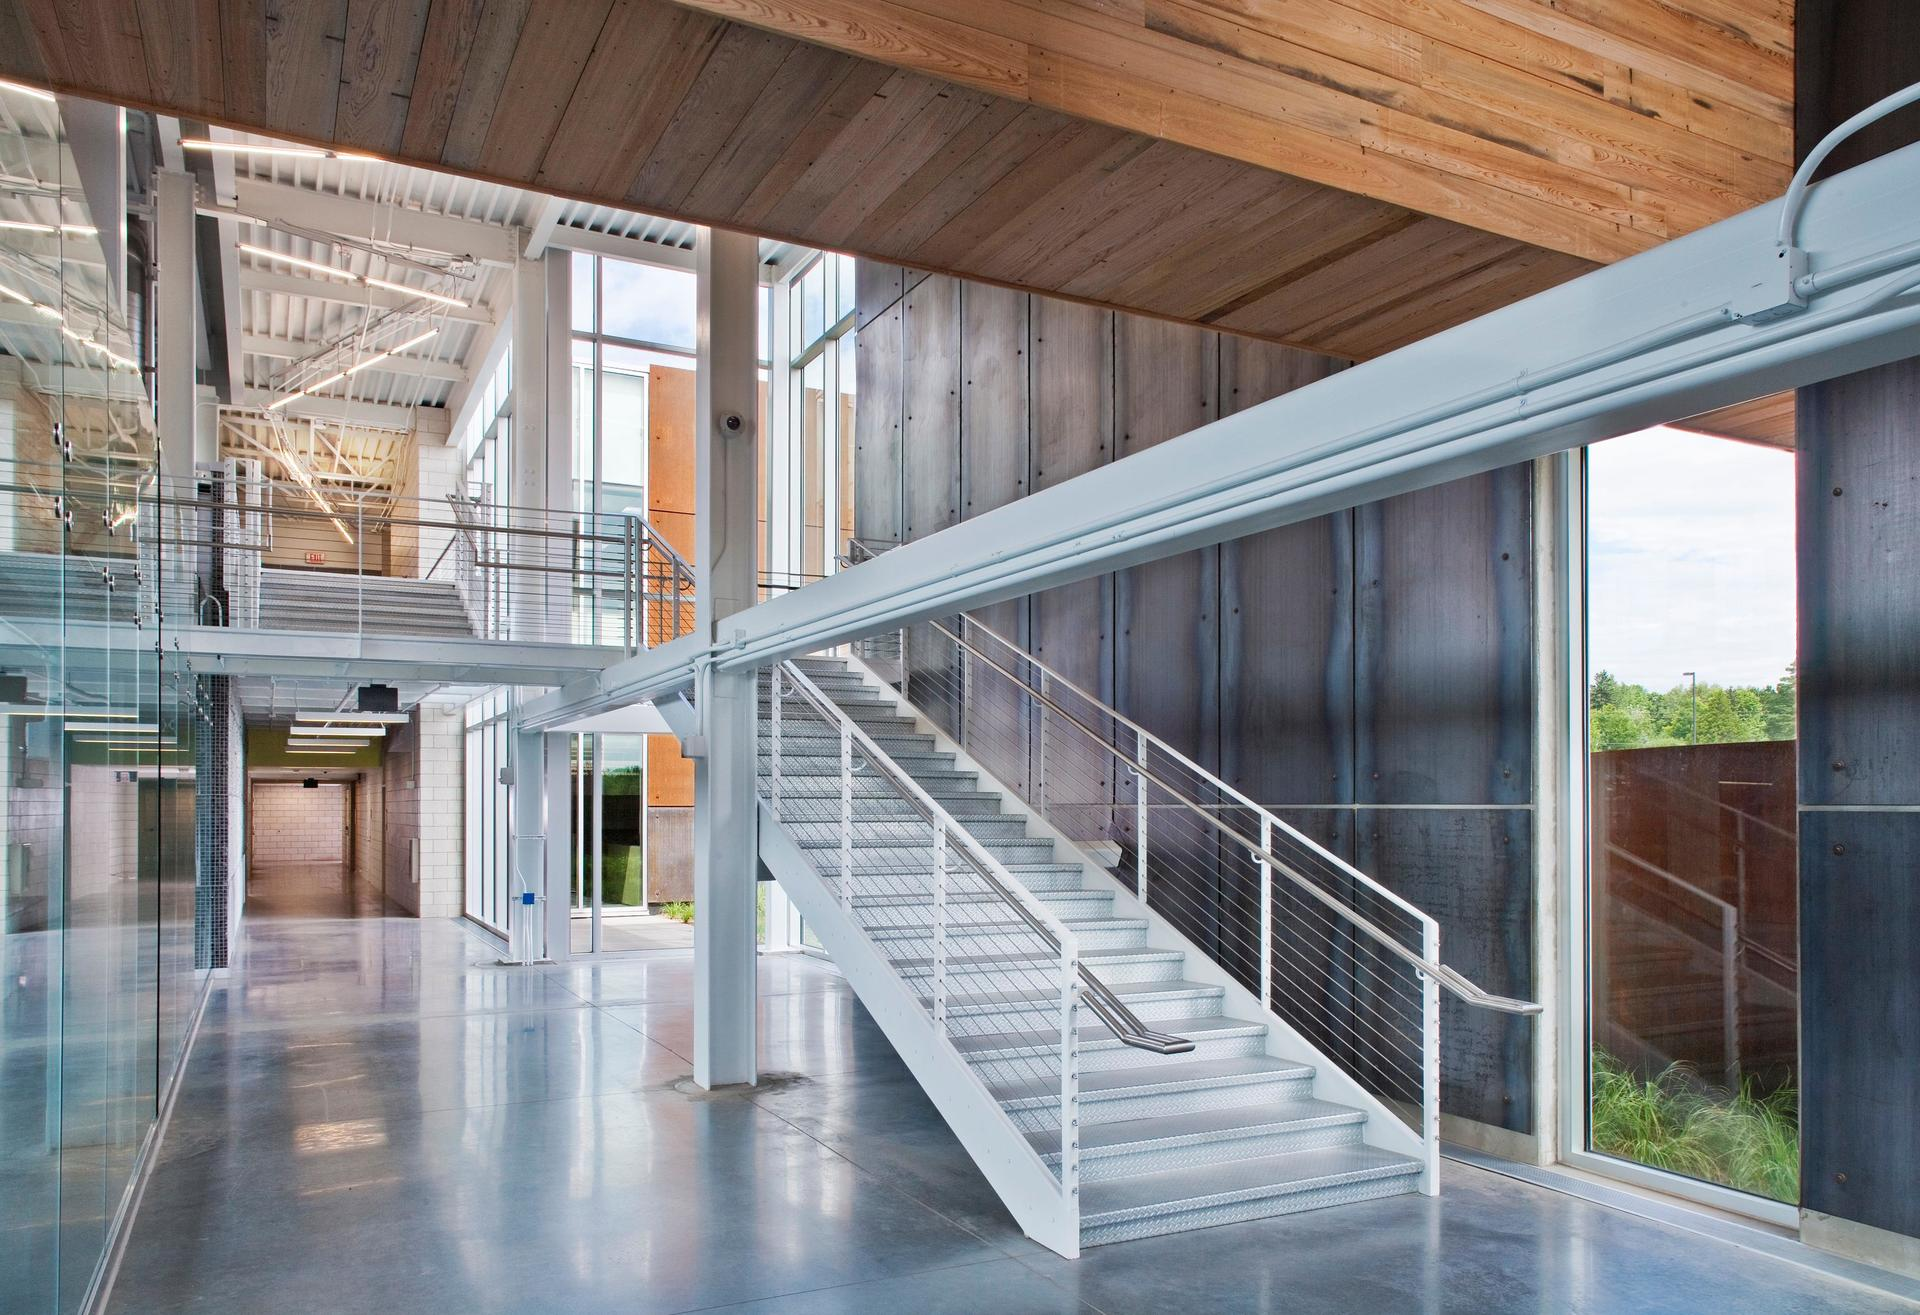 The clean aesthetic of the interior stairs at the UMD: Swenson Civil Engineering Building in Duluth, Minnesota, by Stahl.